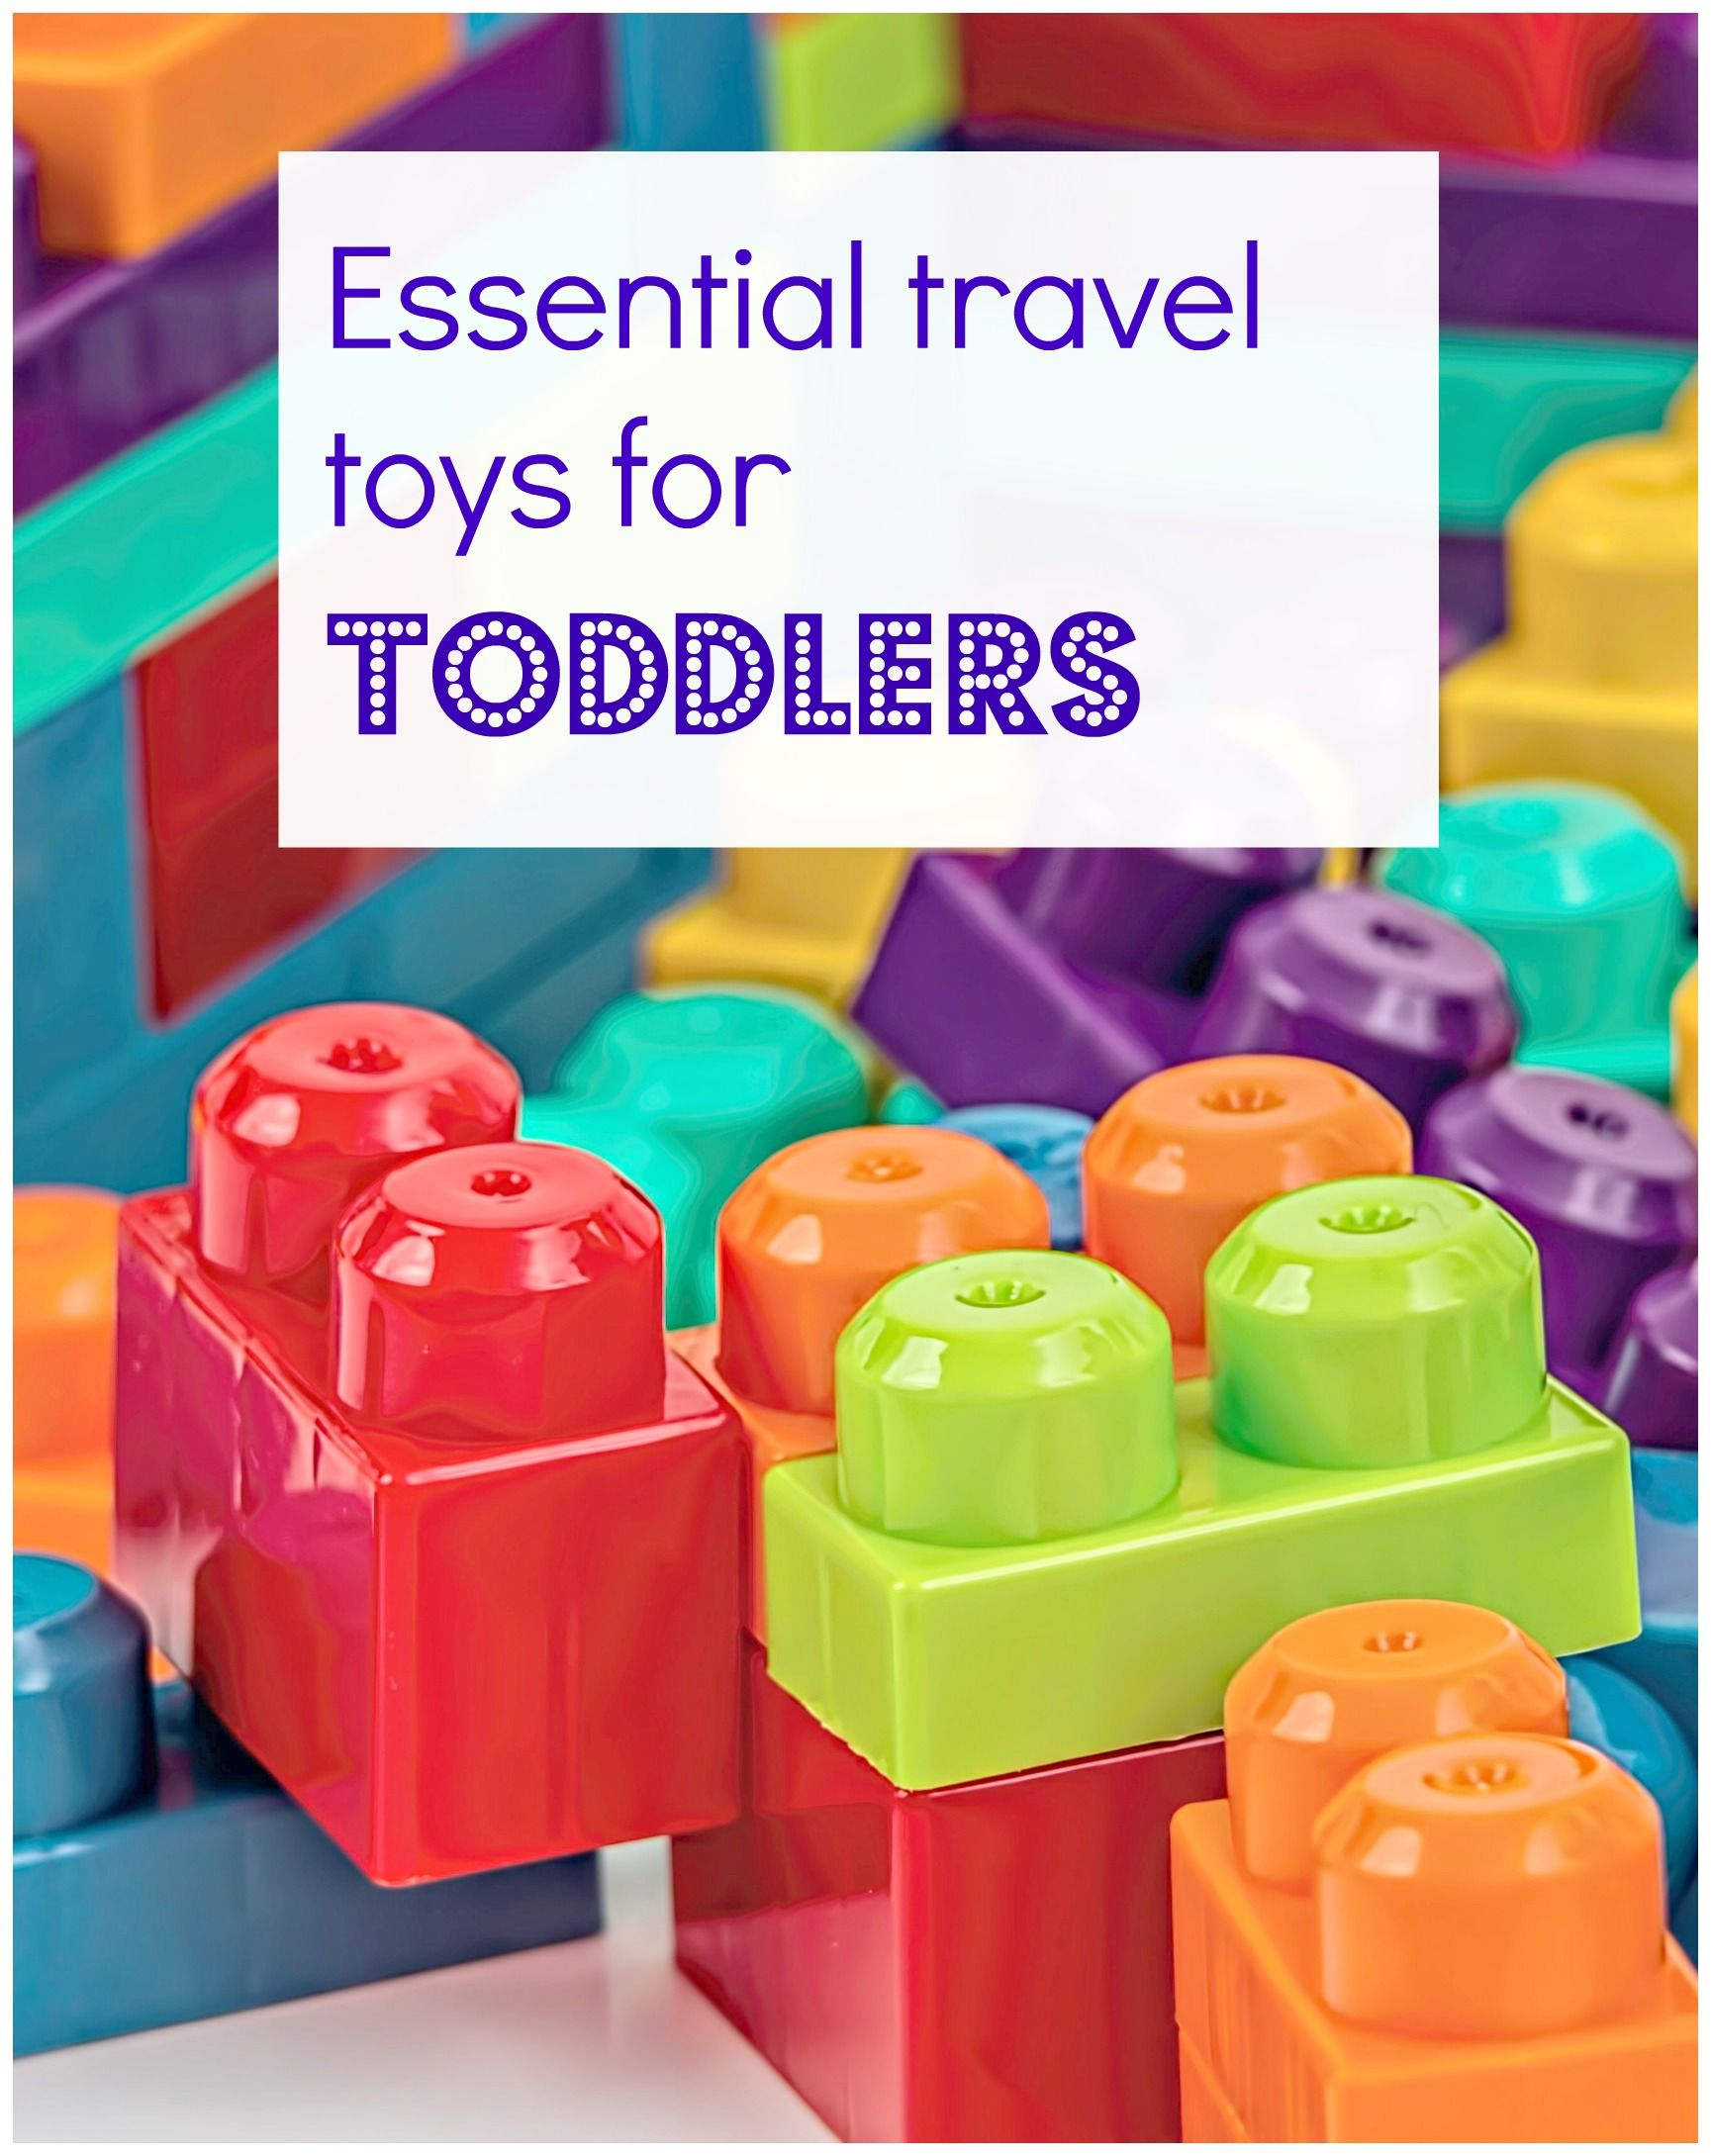 Travel checklist Your essential toddler travel toys